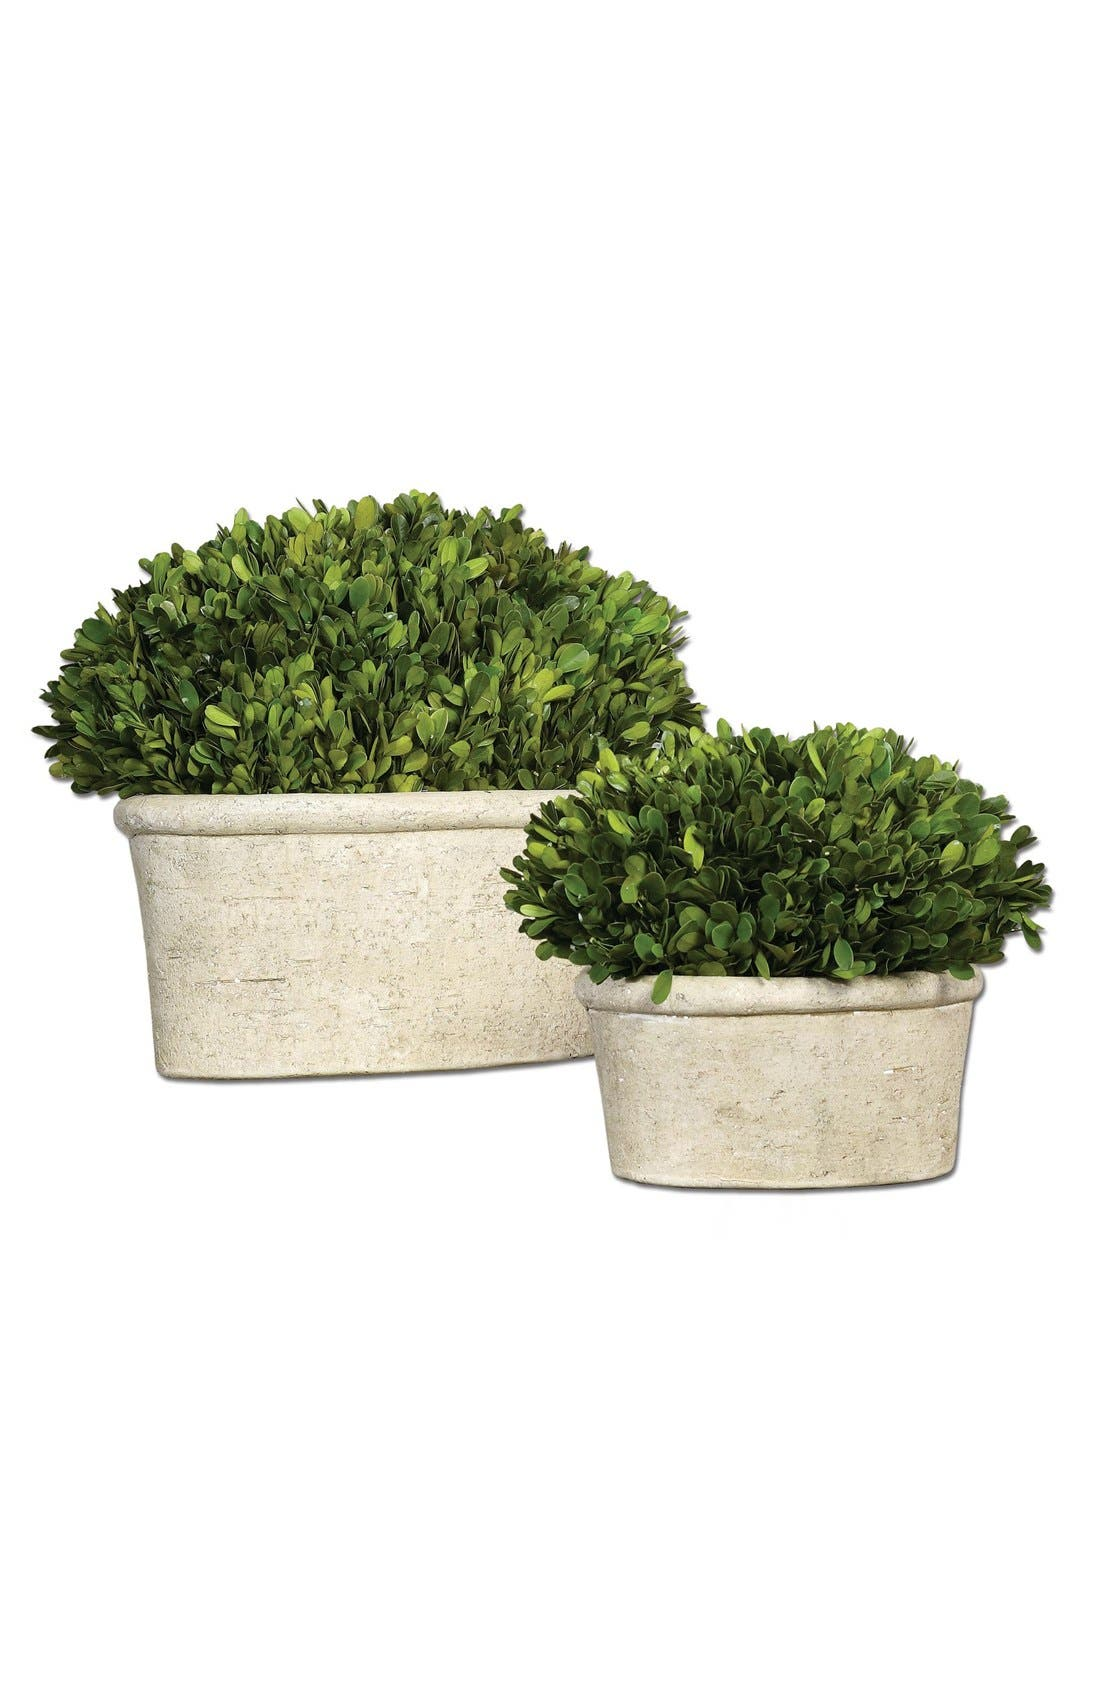 'Oval Domes' Preserved Boxwood Decorations,                             Main thumbnail 1, color,                             Green